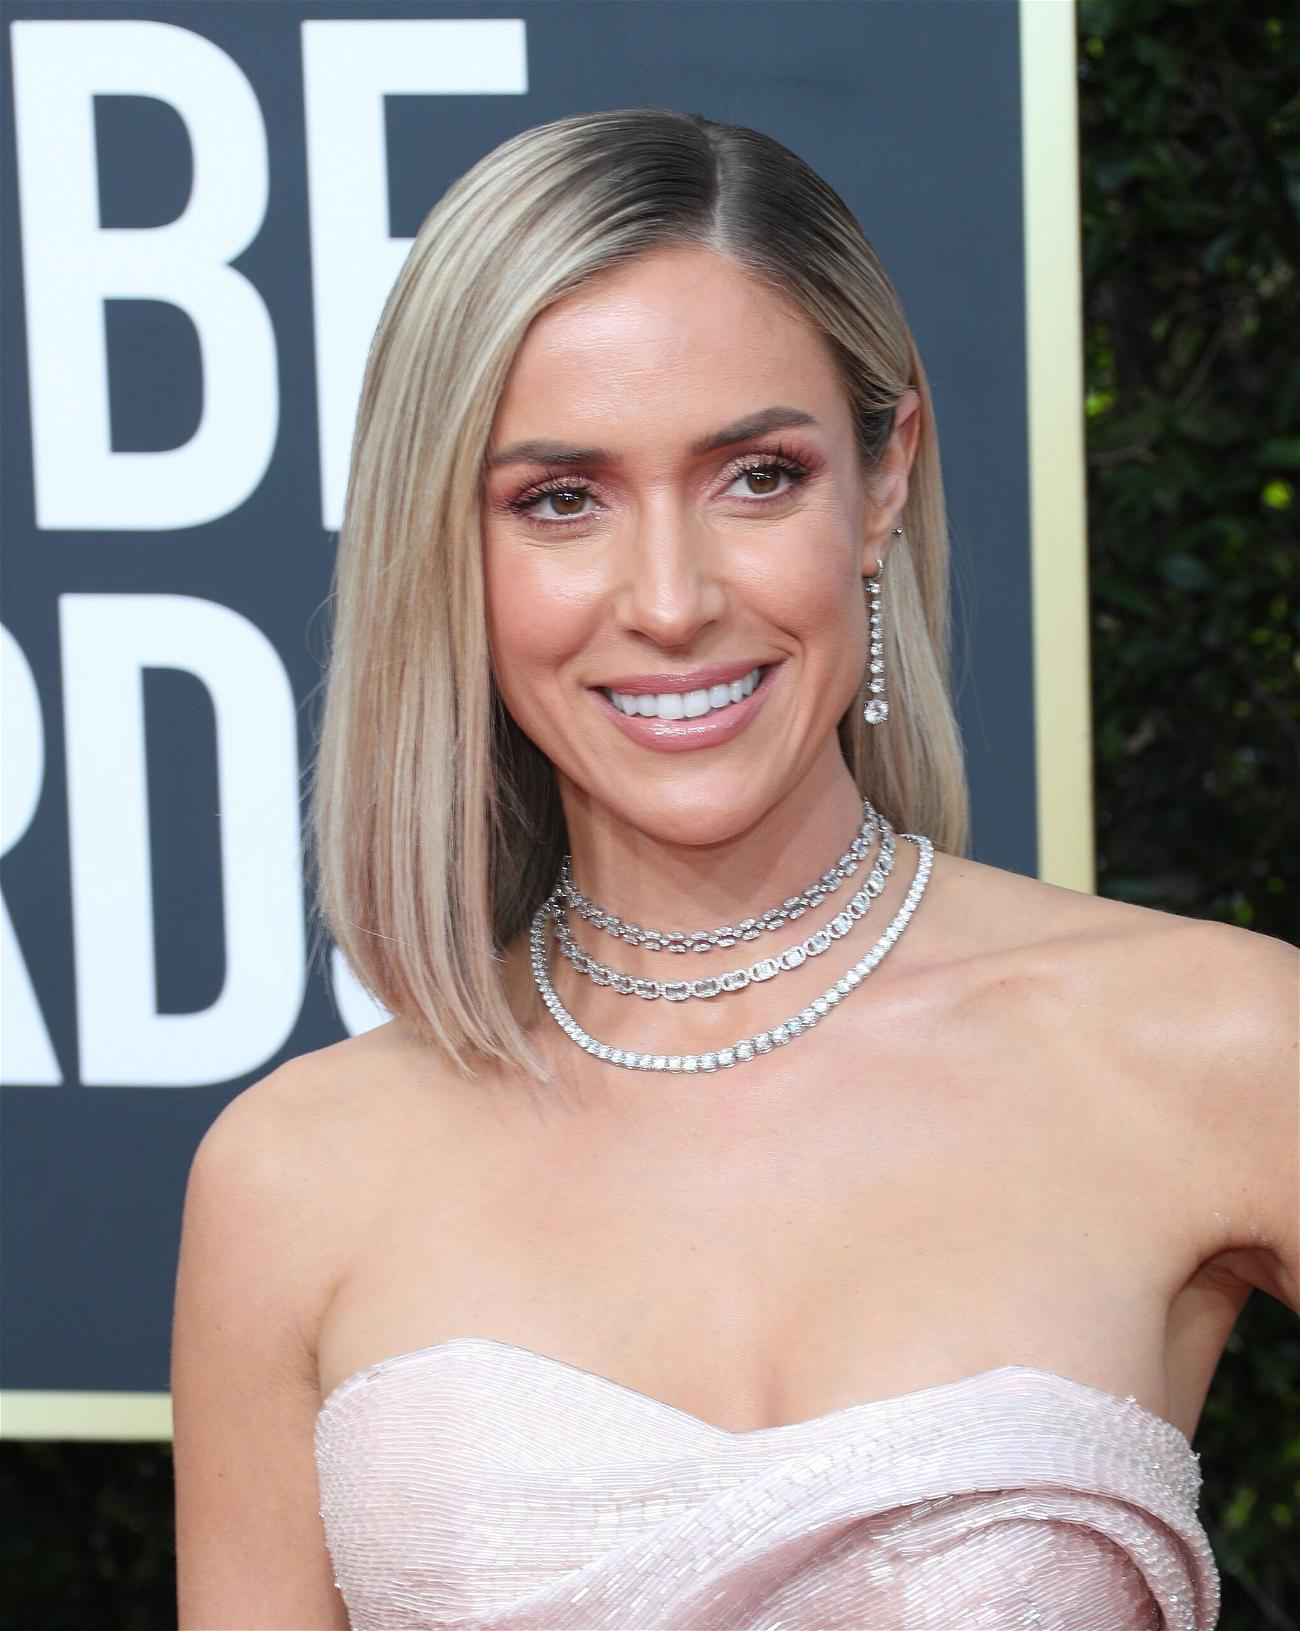 Kristin Cavallari Reportedly Dating Country Star Chase Rice